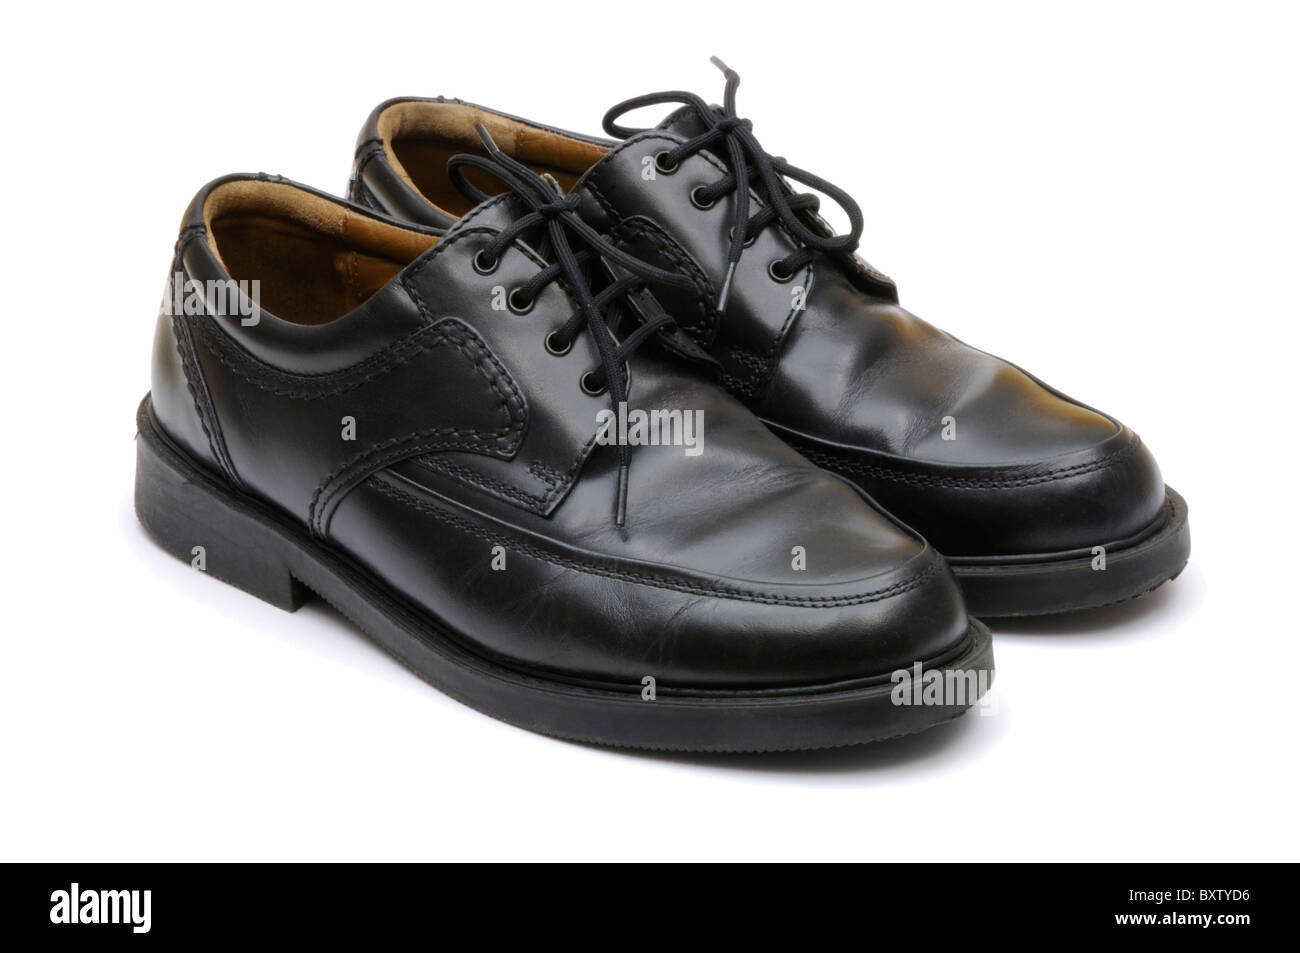 Formal black leather men's shoes Stock Photo: 33739810 Alamy